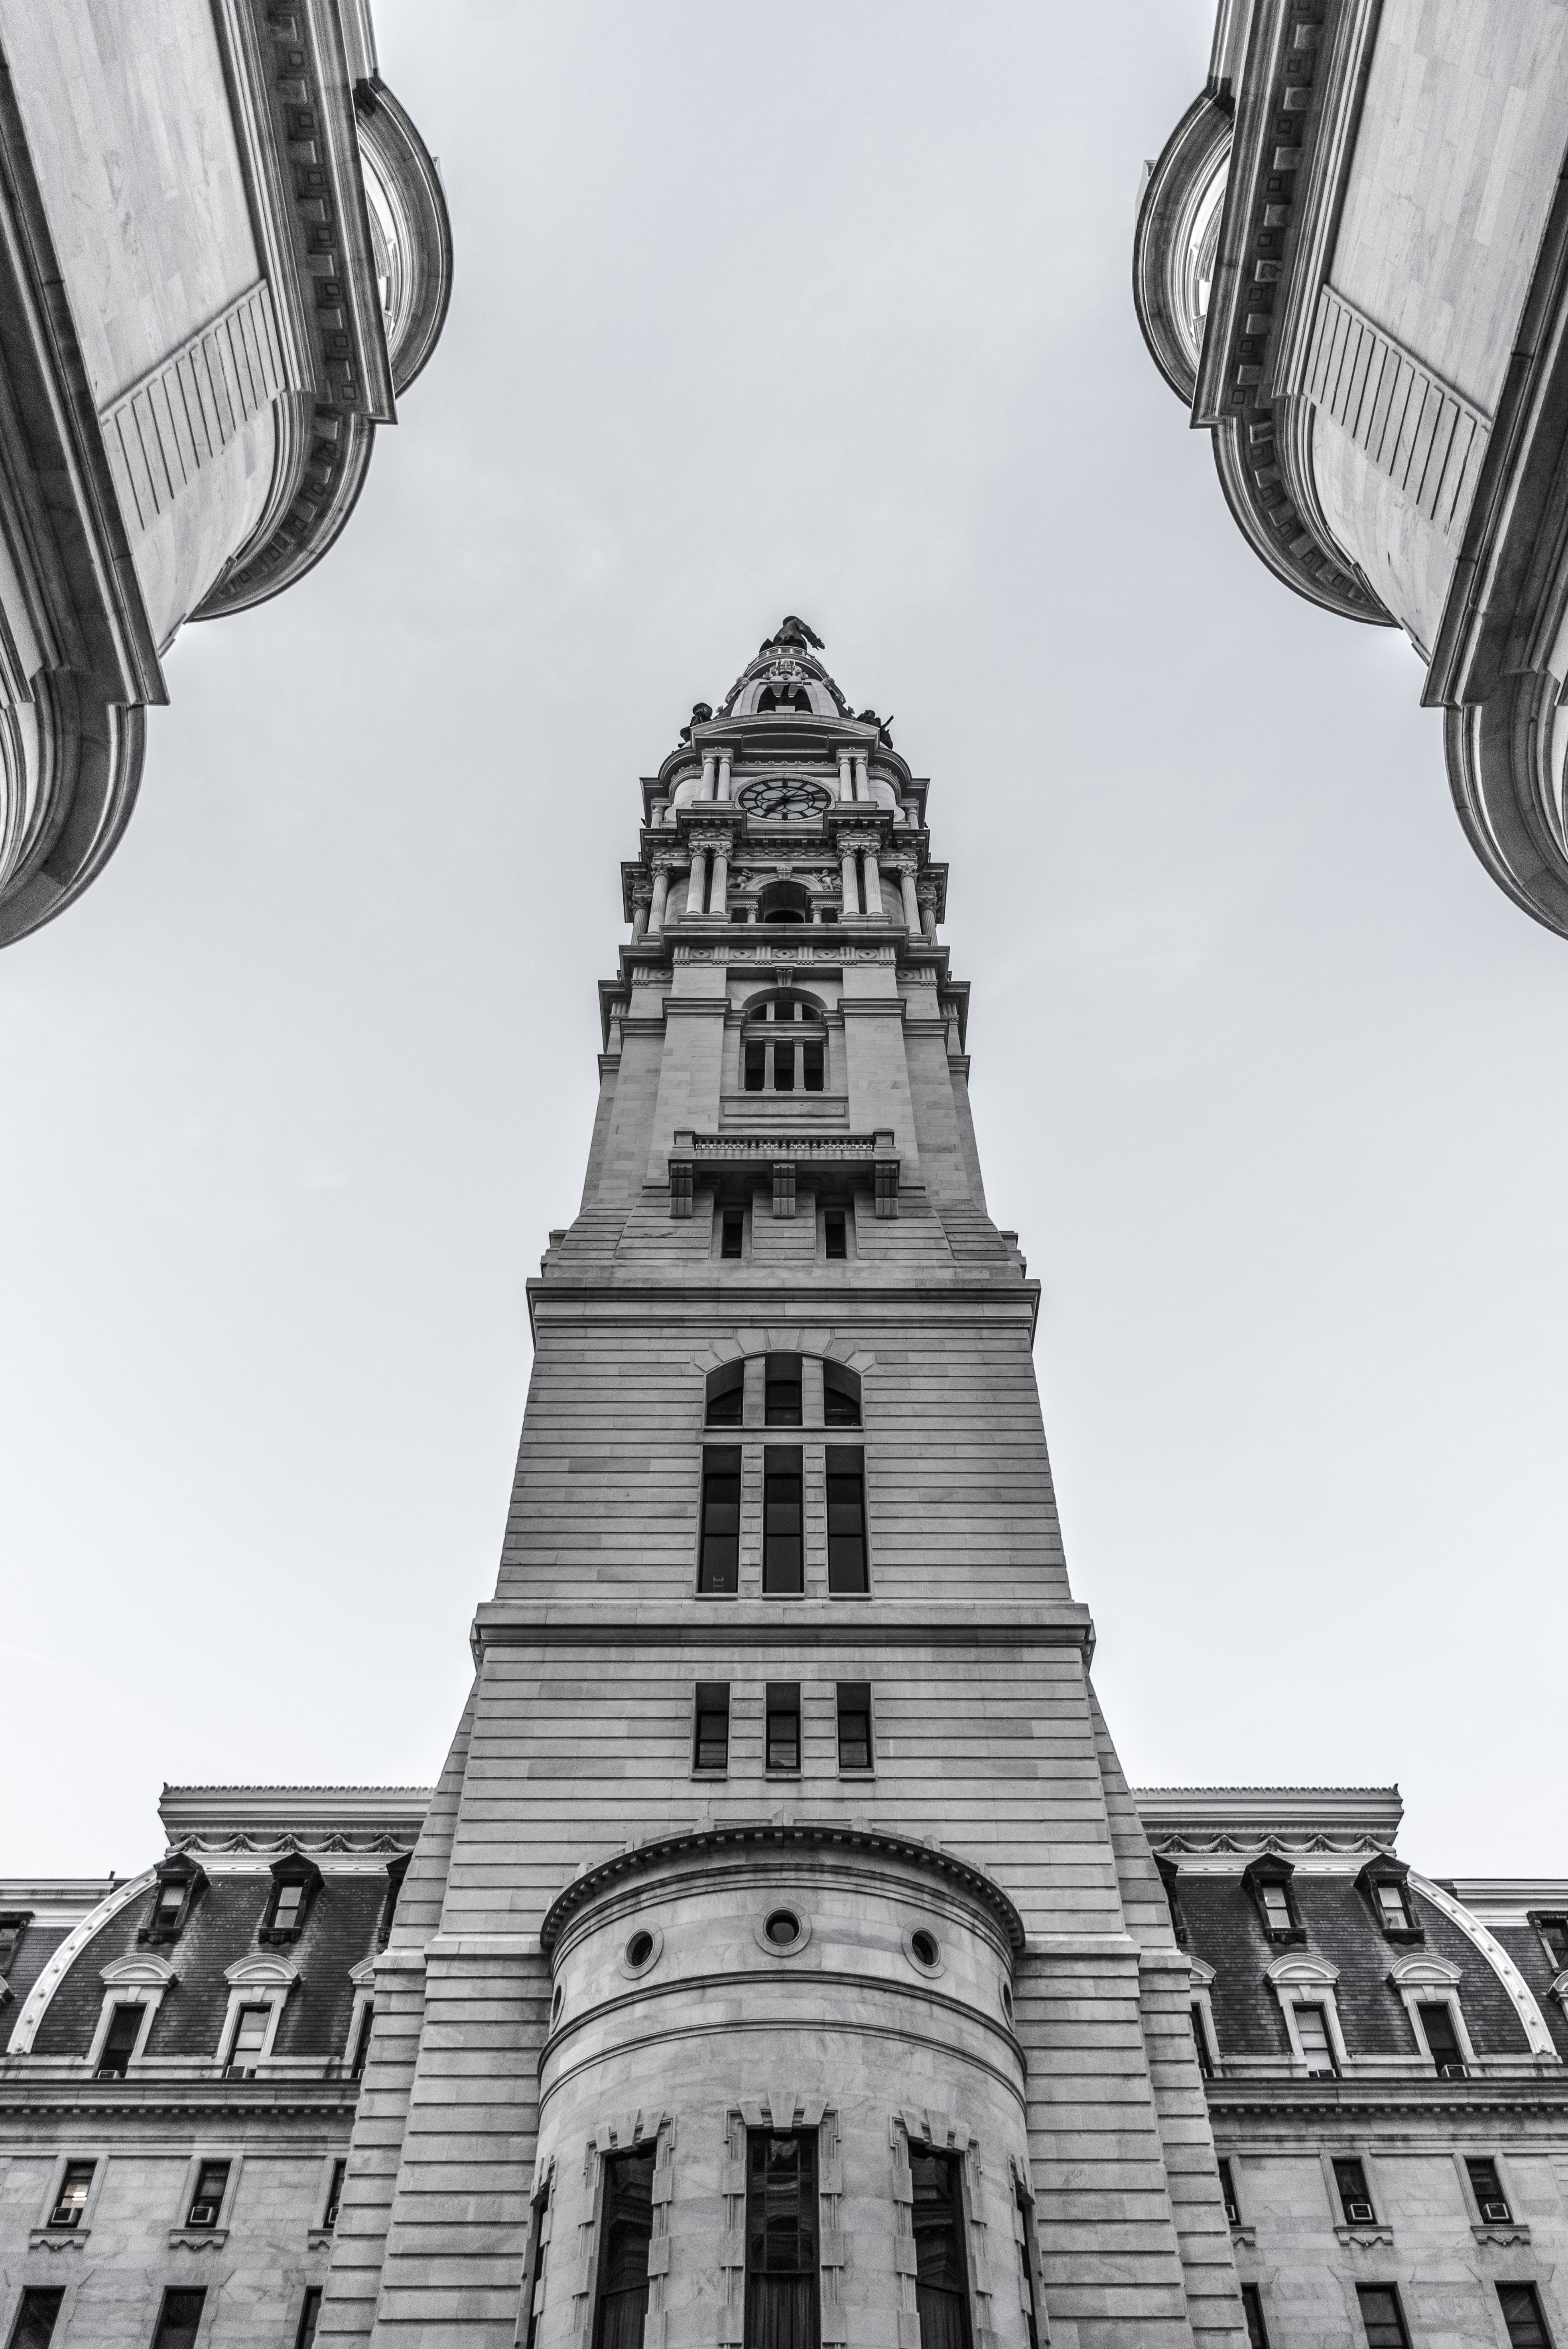 Black and white shot of large gothic building with tower and clear sky, Philadelphia City Hall